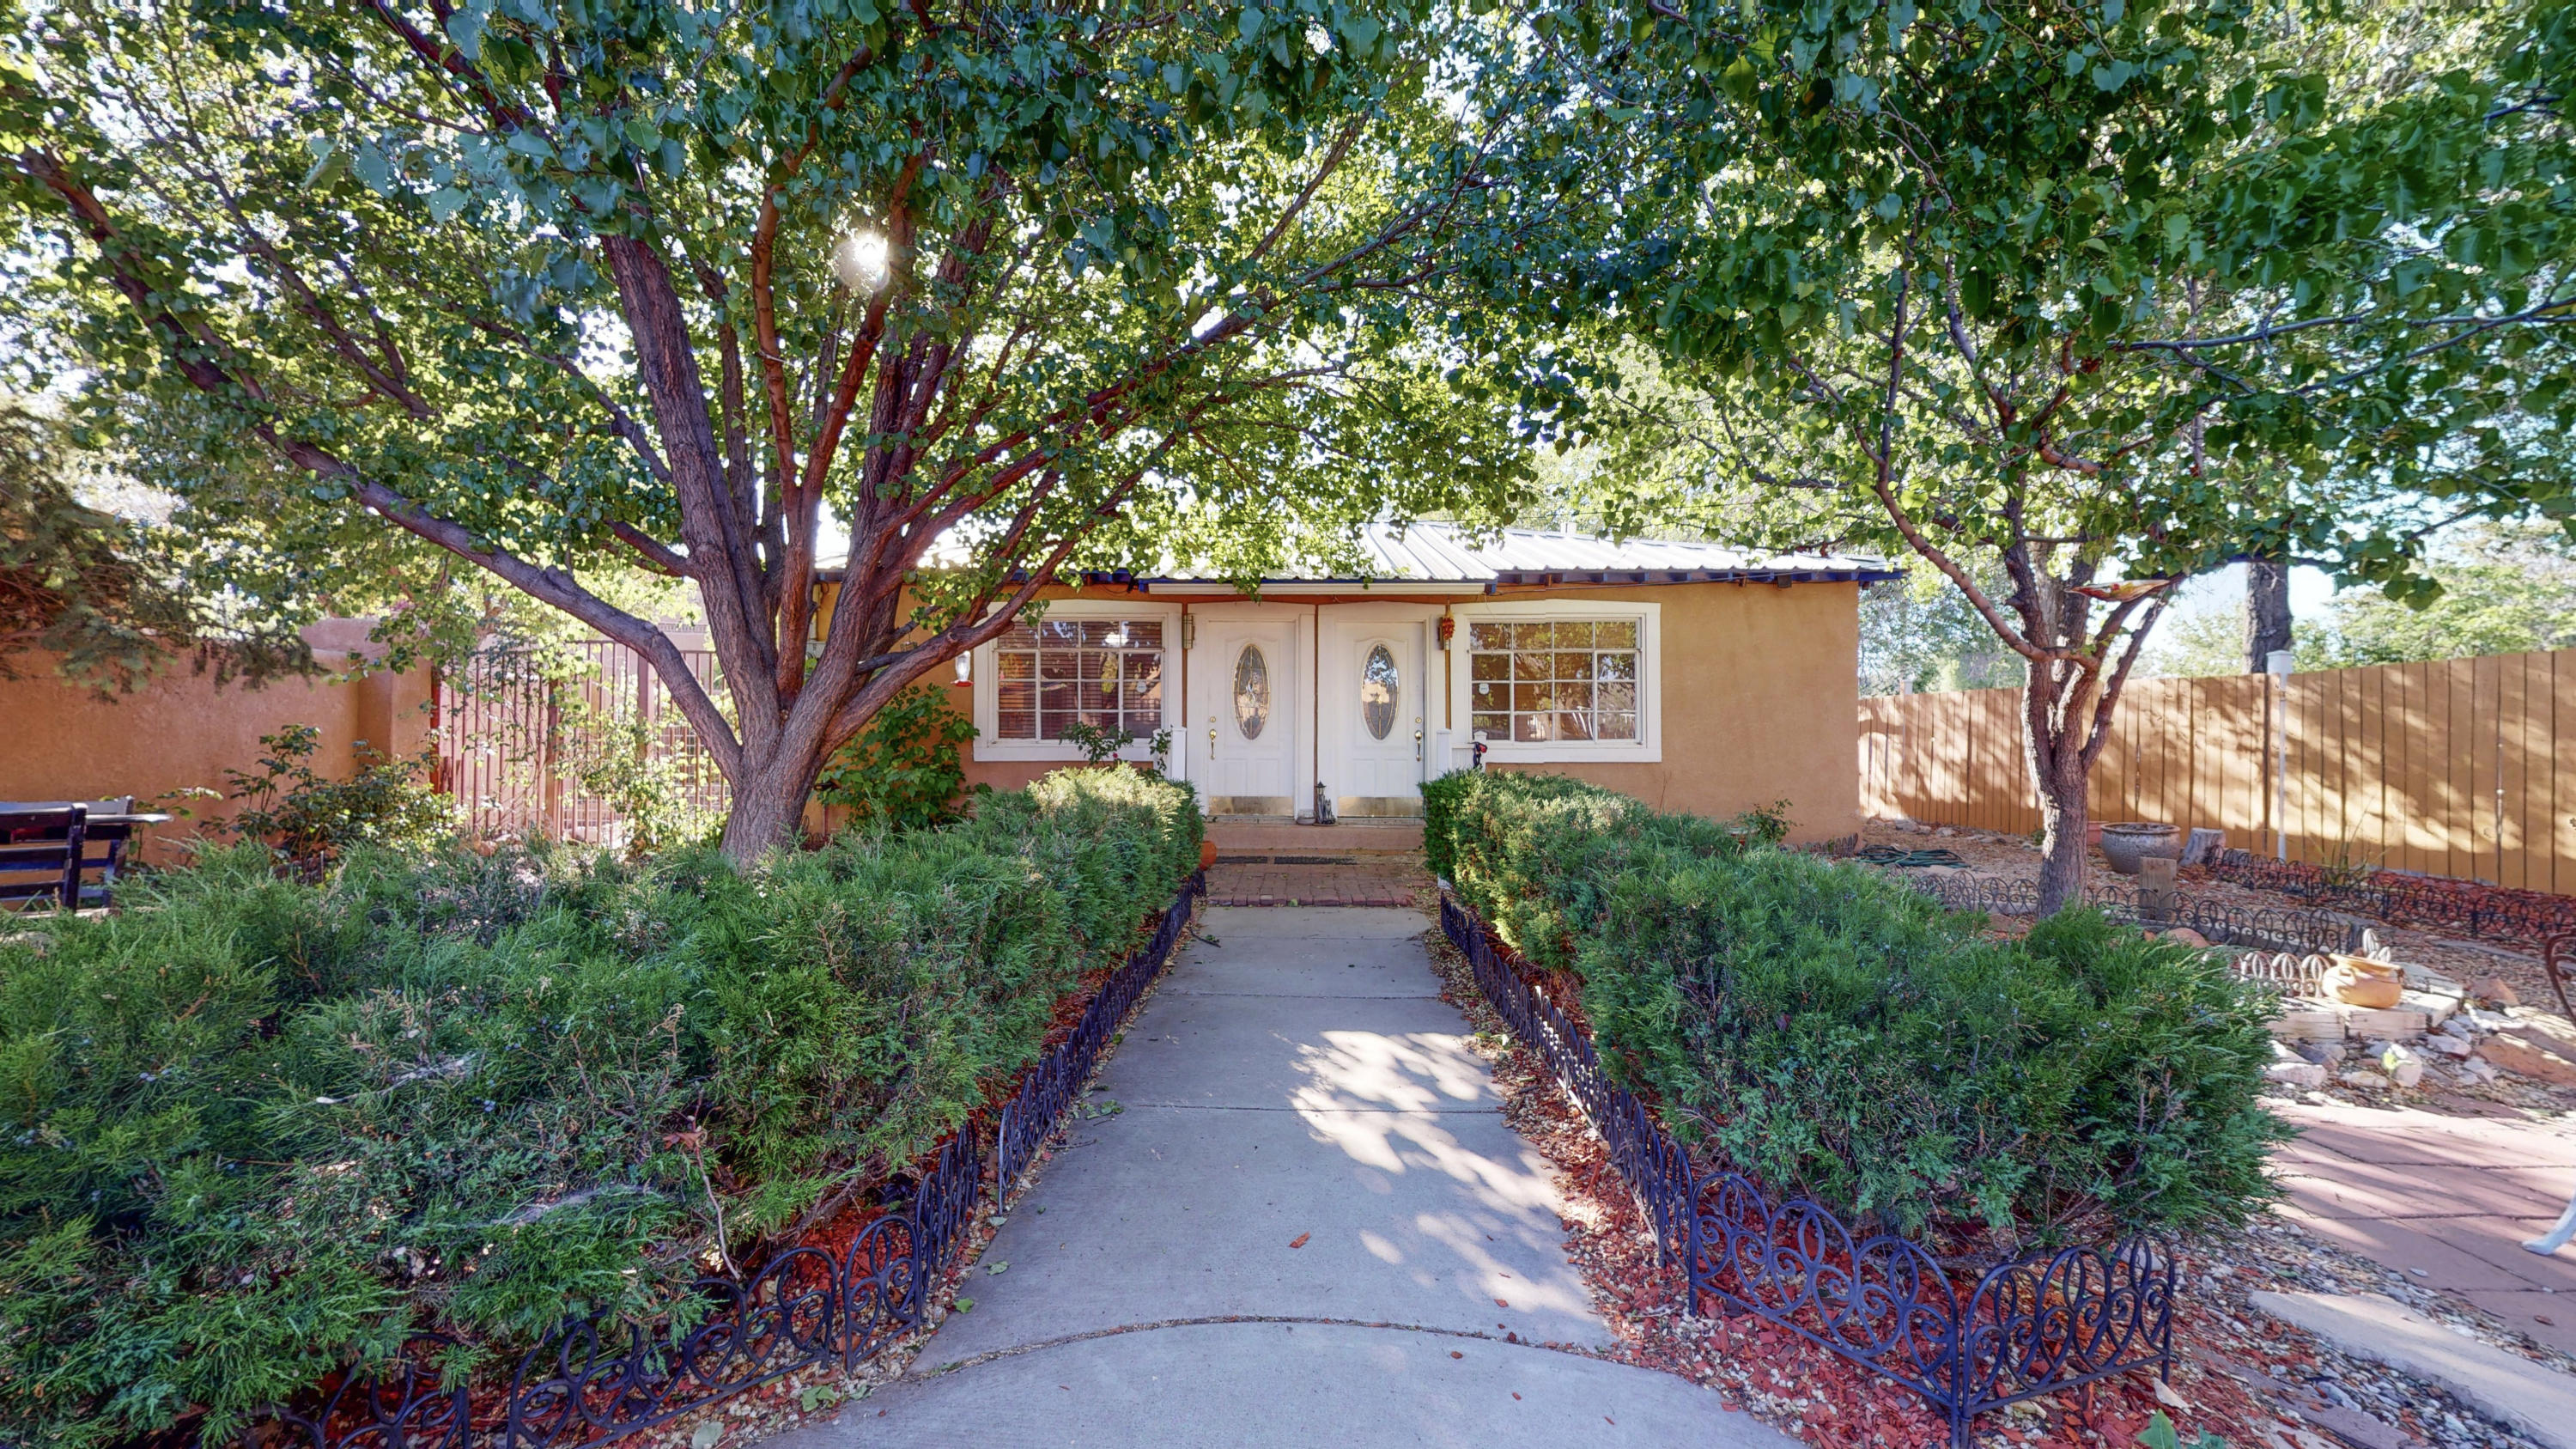 Beautiful North Valley property!  Just off Rio Grande near Old town and the Nature Center with easy access to the bosque trails and just north of I-40.  Gated and fully fenced with  mature  landscape off a private, fairly hidden driveway.   This townhome would be a great opportunity for rental income, an office for an attorney or CPA or a great space for a marijuana dispensary.   Up to 6 private parking spaces with community parking available. Rare Zoning!Zoned C-1 & Multi-family Res U4U, Current rental income is $1295 per unit.